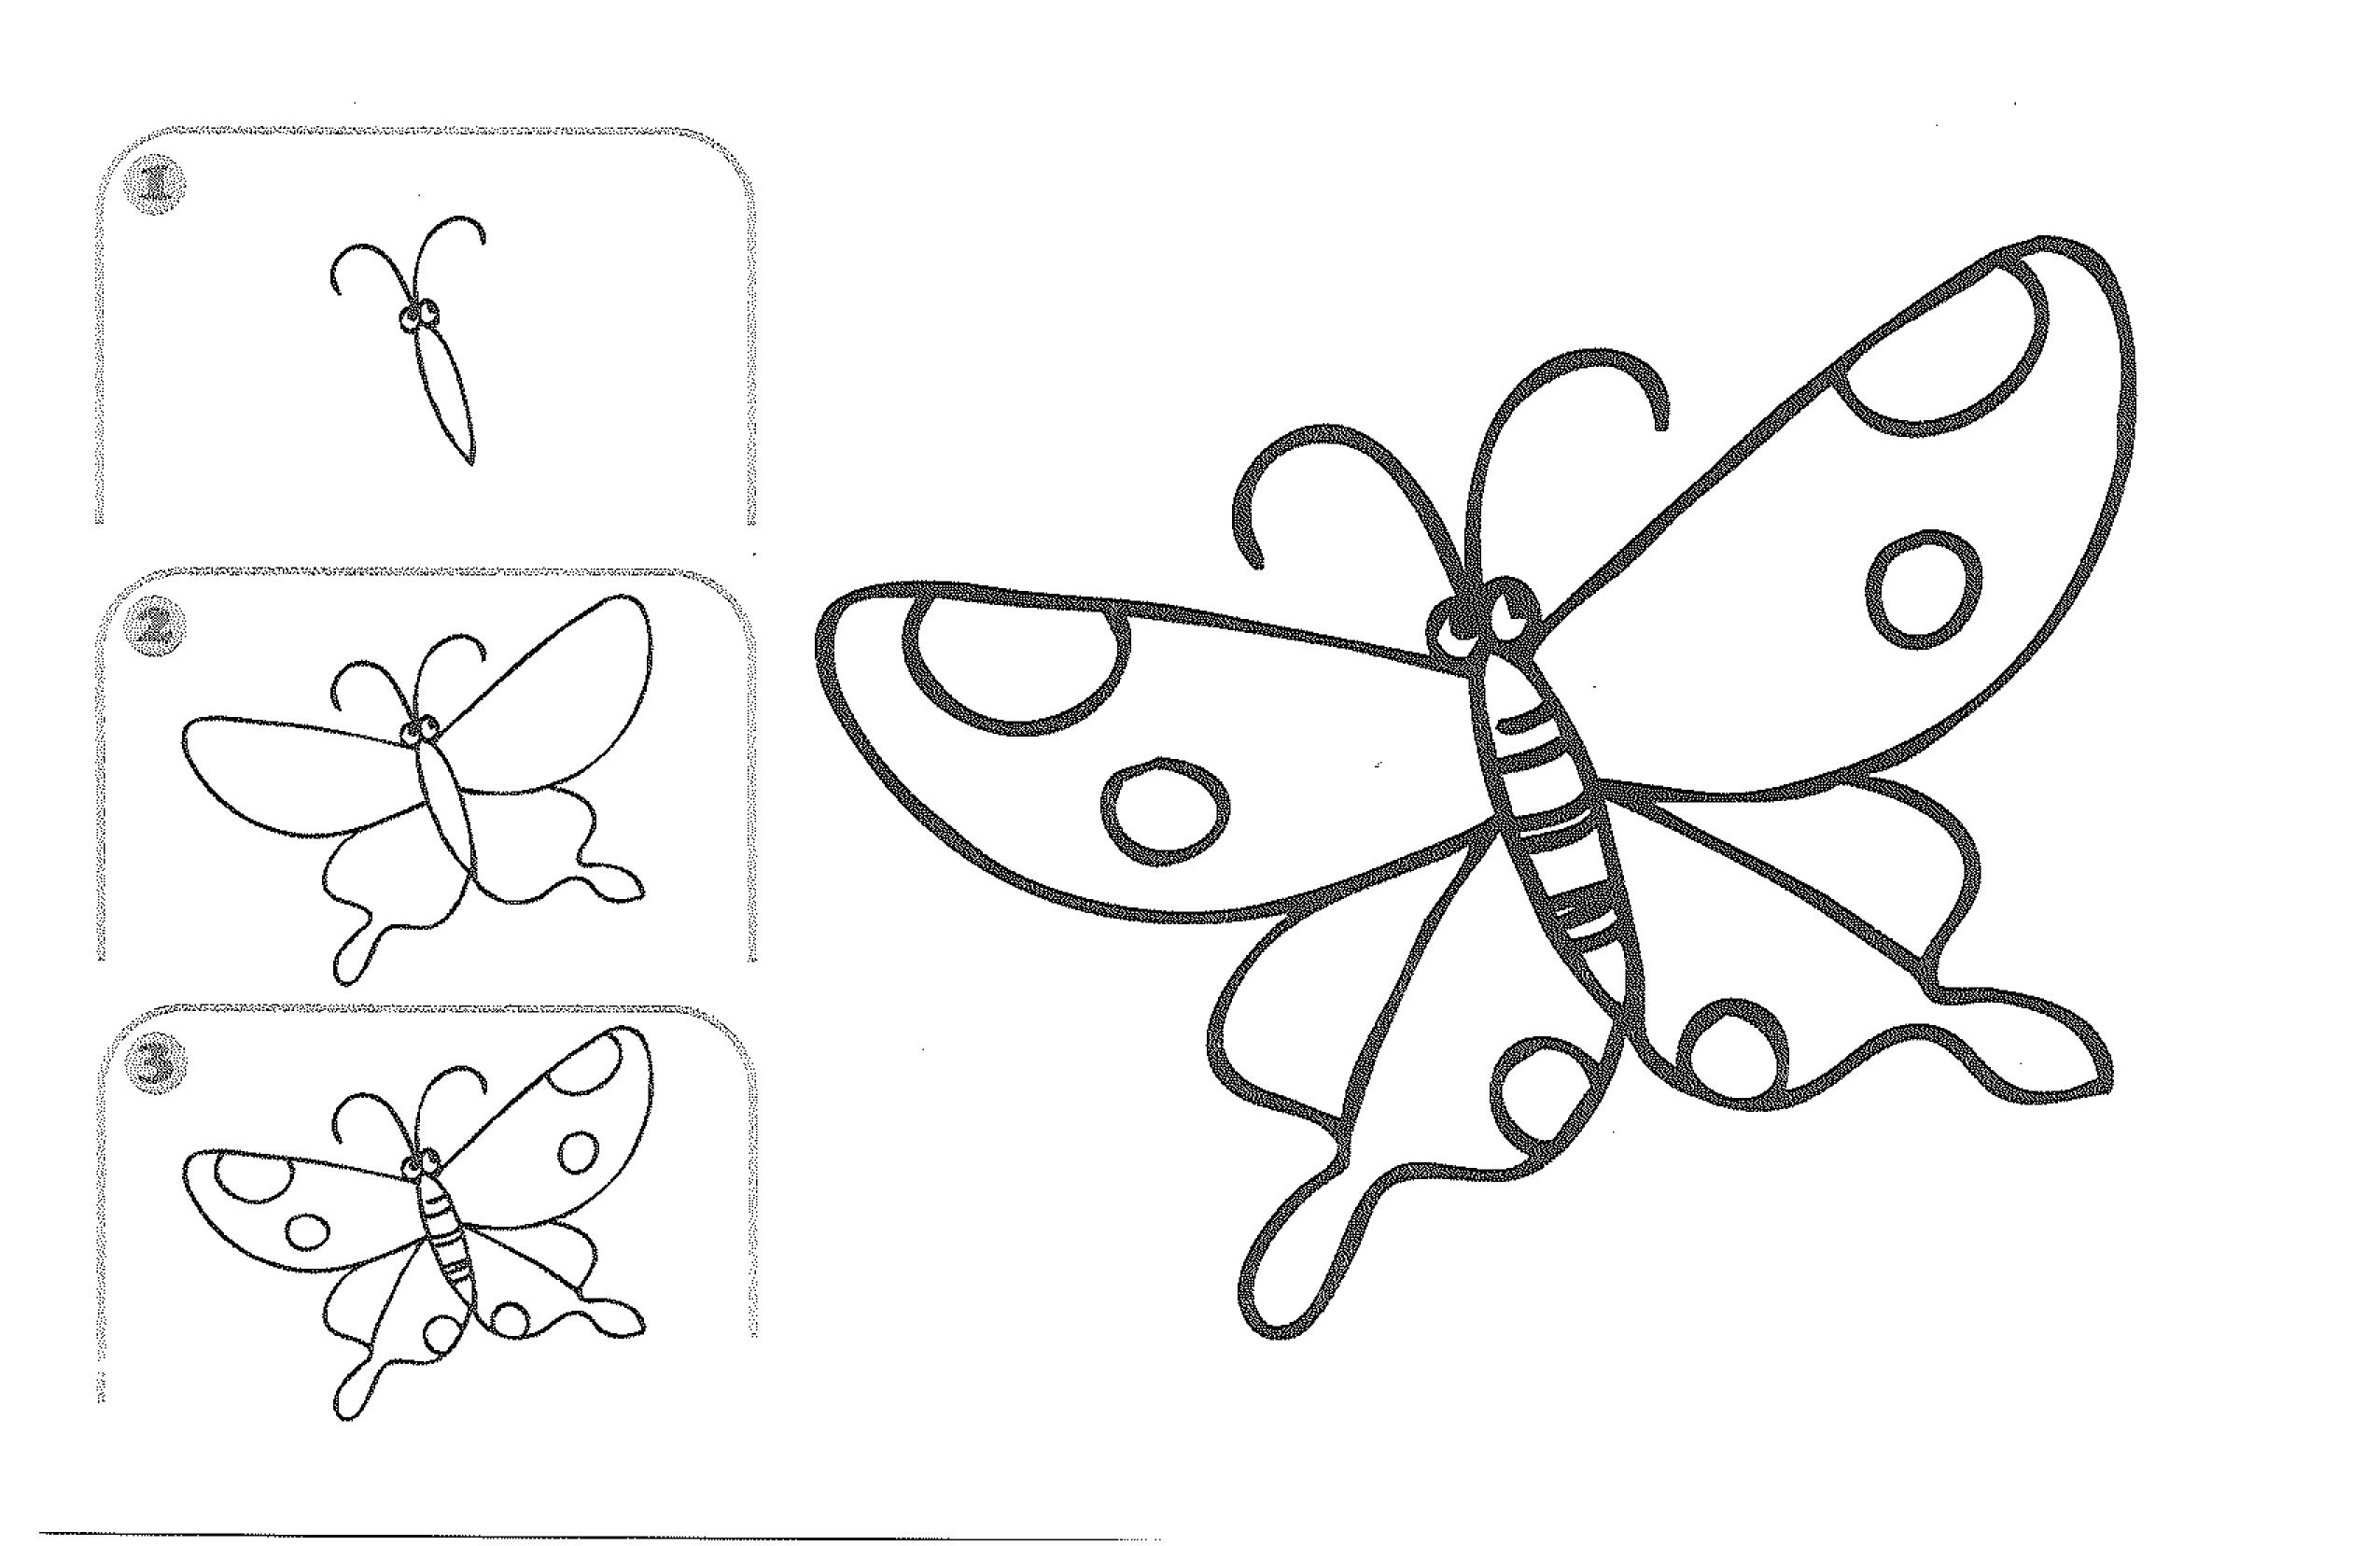 drawings by kids kids learn to draw insects teaching kids drawing free printable - Drawing Pictures For Children